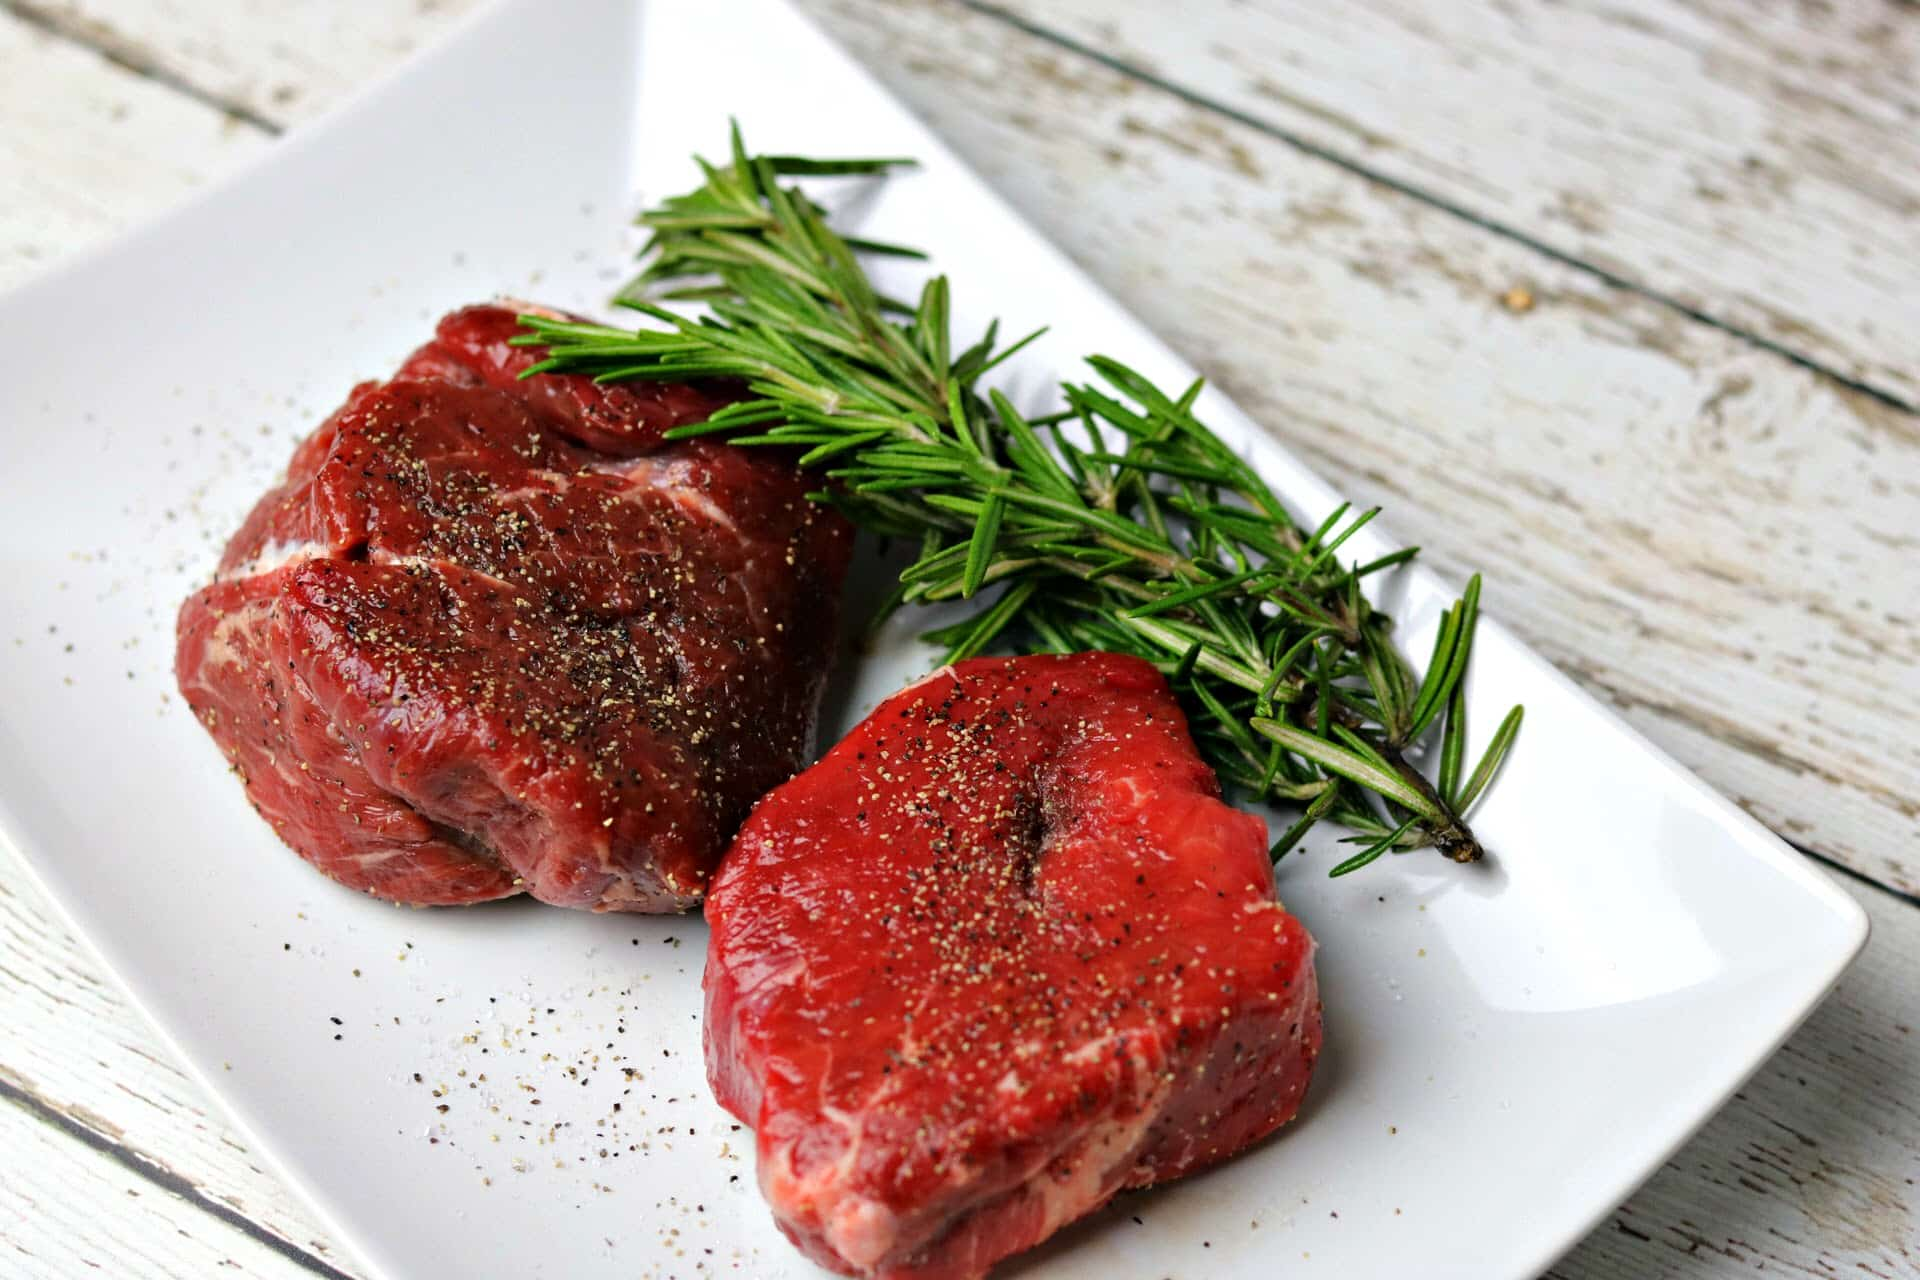 Two filet mignons on a plate with rosemary